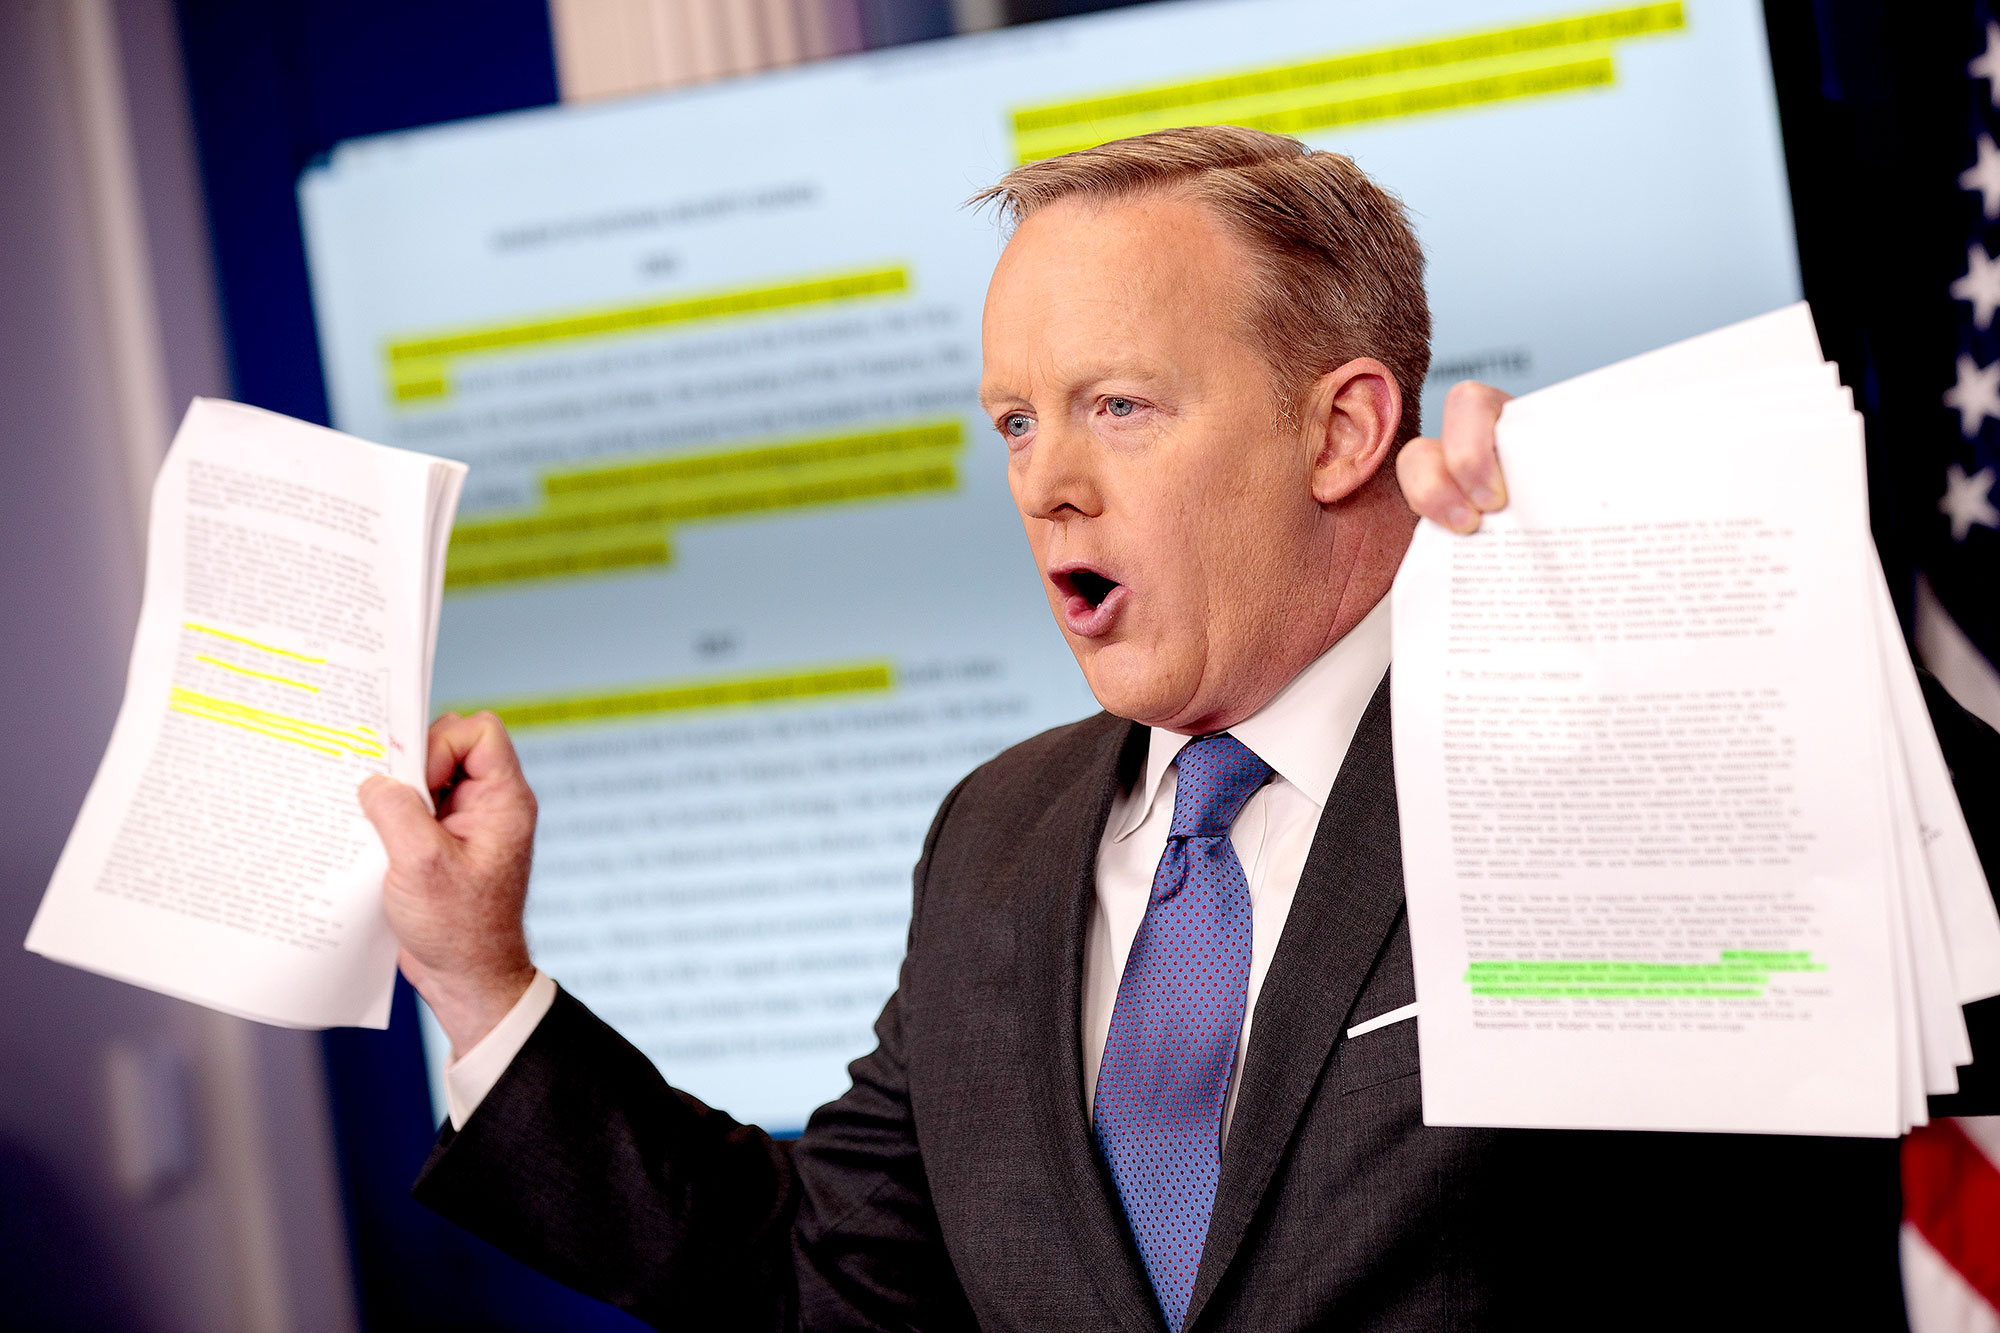 White House Press Secretary Sean Spicer holds up paperwork highlighting and comparing language about the National Security Council from the Trump administration and previous administrations during the daily press briefing at the White House, January 30, 2017 in Washington, DC.